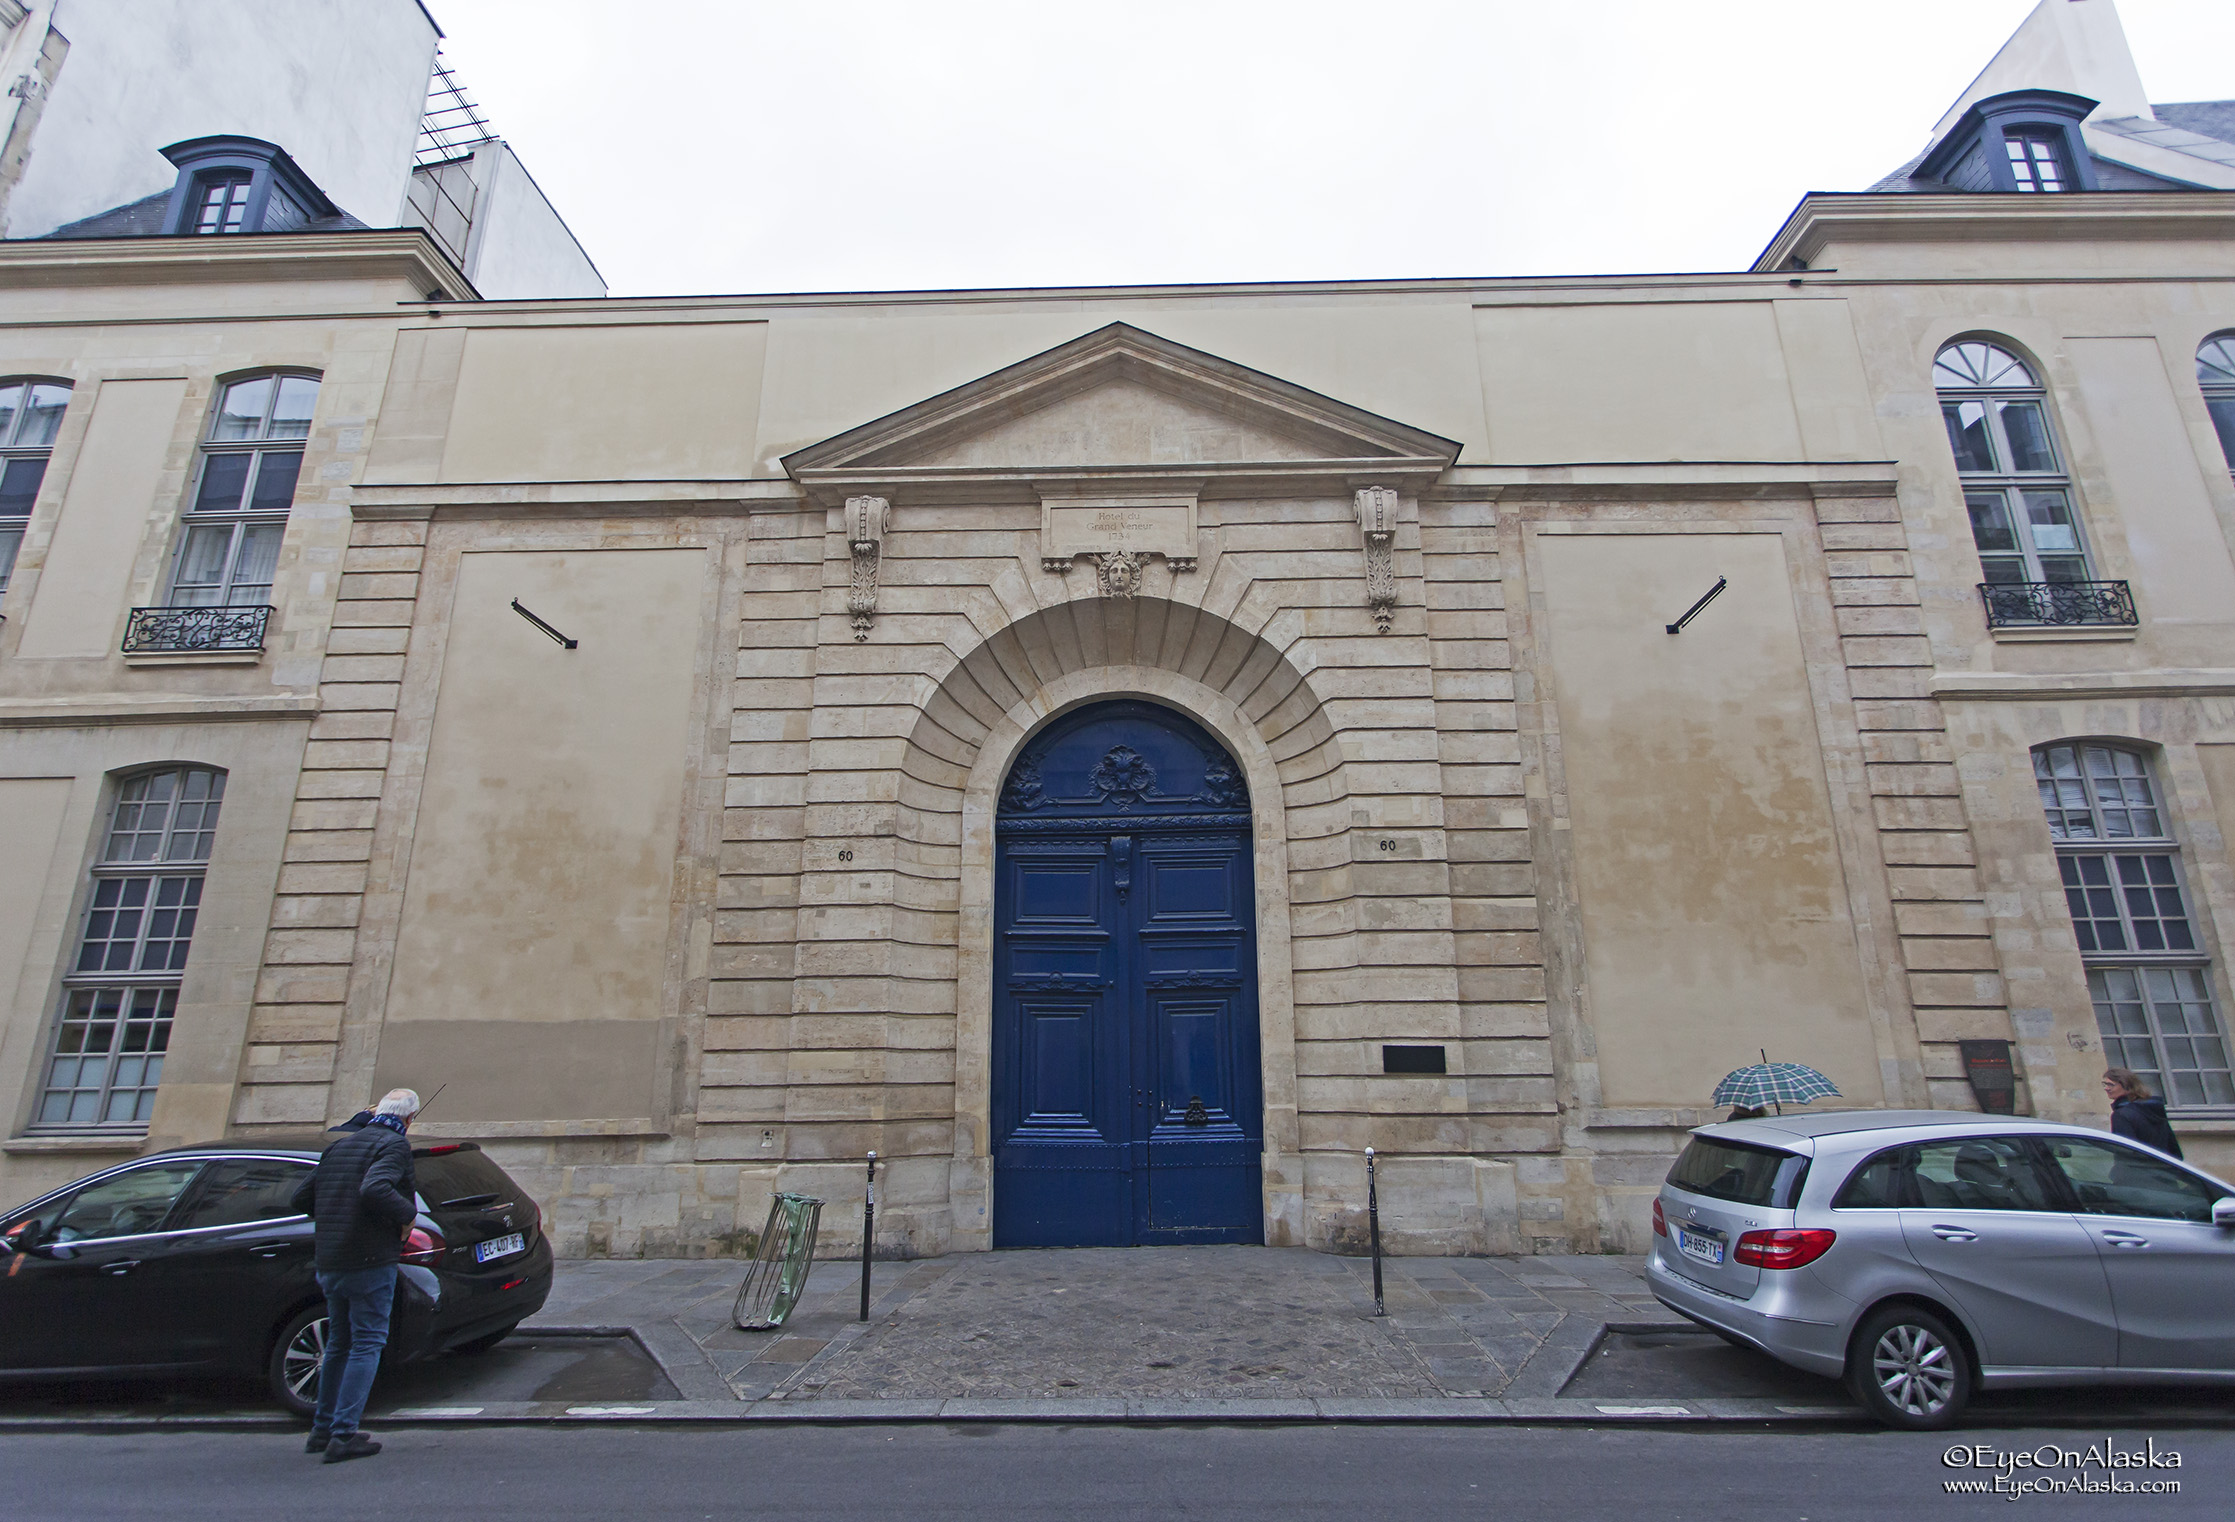 I spent a lot of time behind the blue gate at 70 Rue de Turenne. My Kohler Co. peeps will recognize the former Jacob Delafon Headquarters.